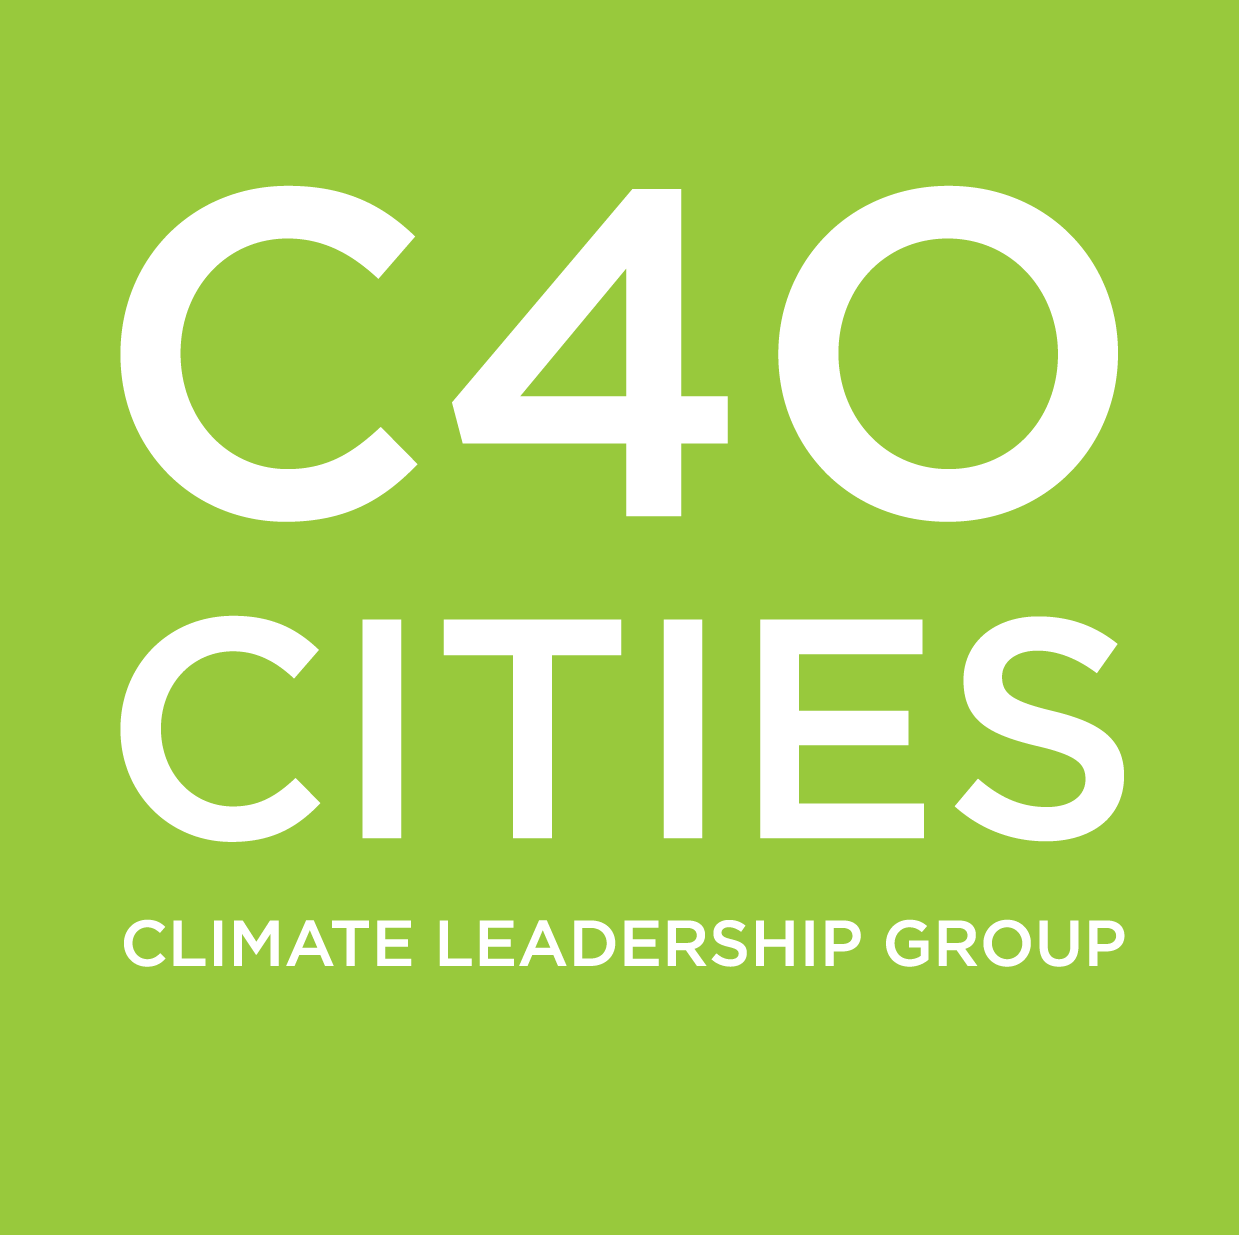 c40-cities-climate-leadership-group-logo